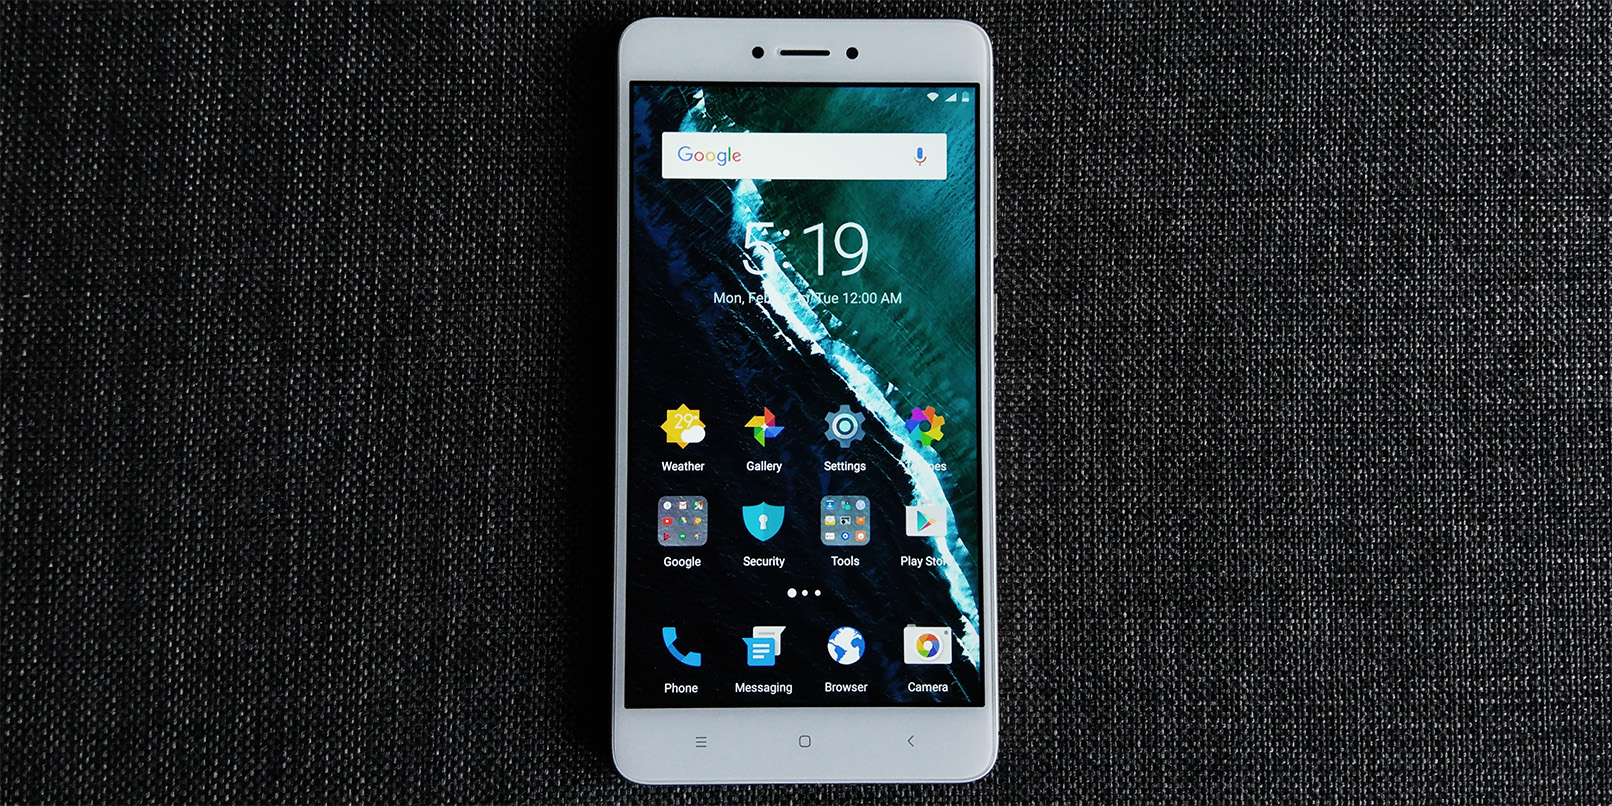 Xiaomi Redmi Note 4 Mini Review 2 Day Battery Life For A Bargain Gadget Handphone